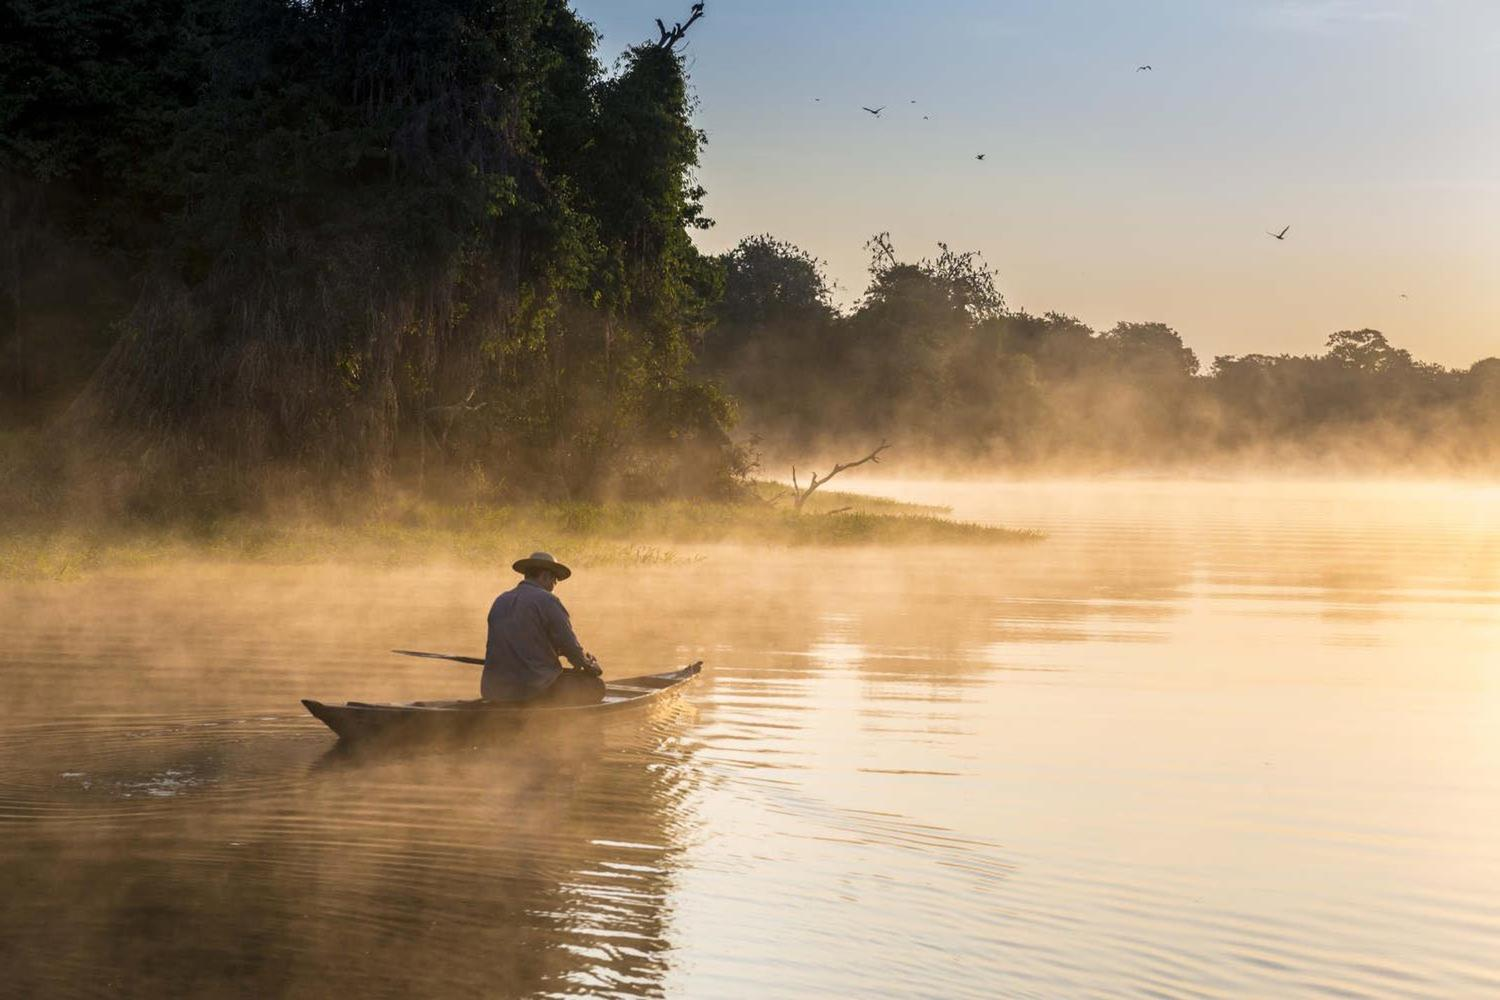 brazil-amazon-man-on_boat-sailing-the-river-in-the-early-morning